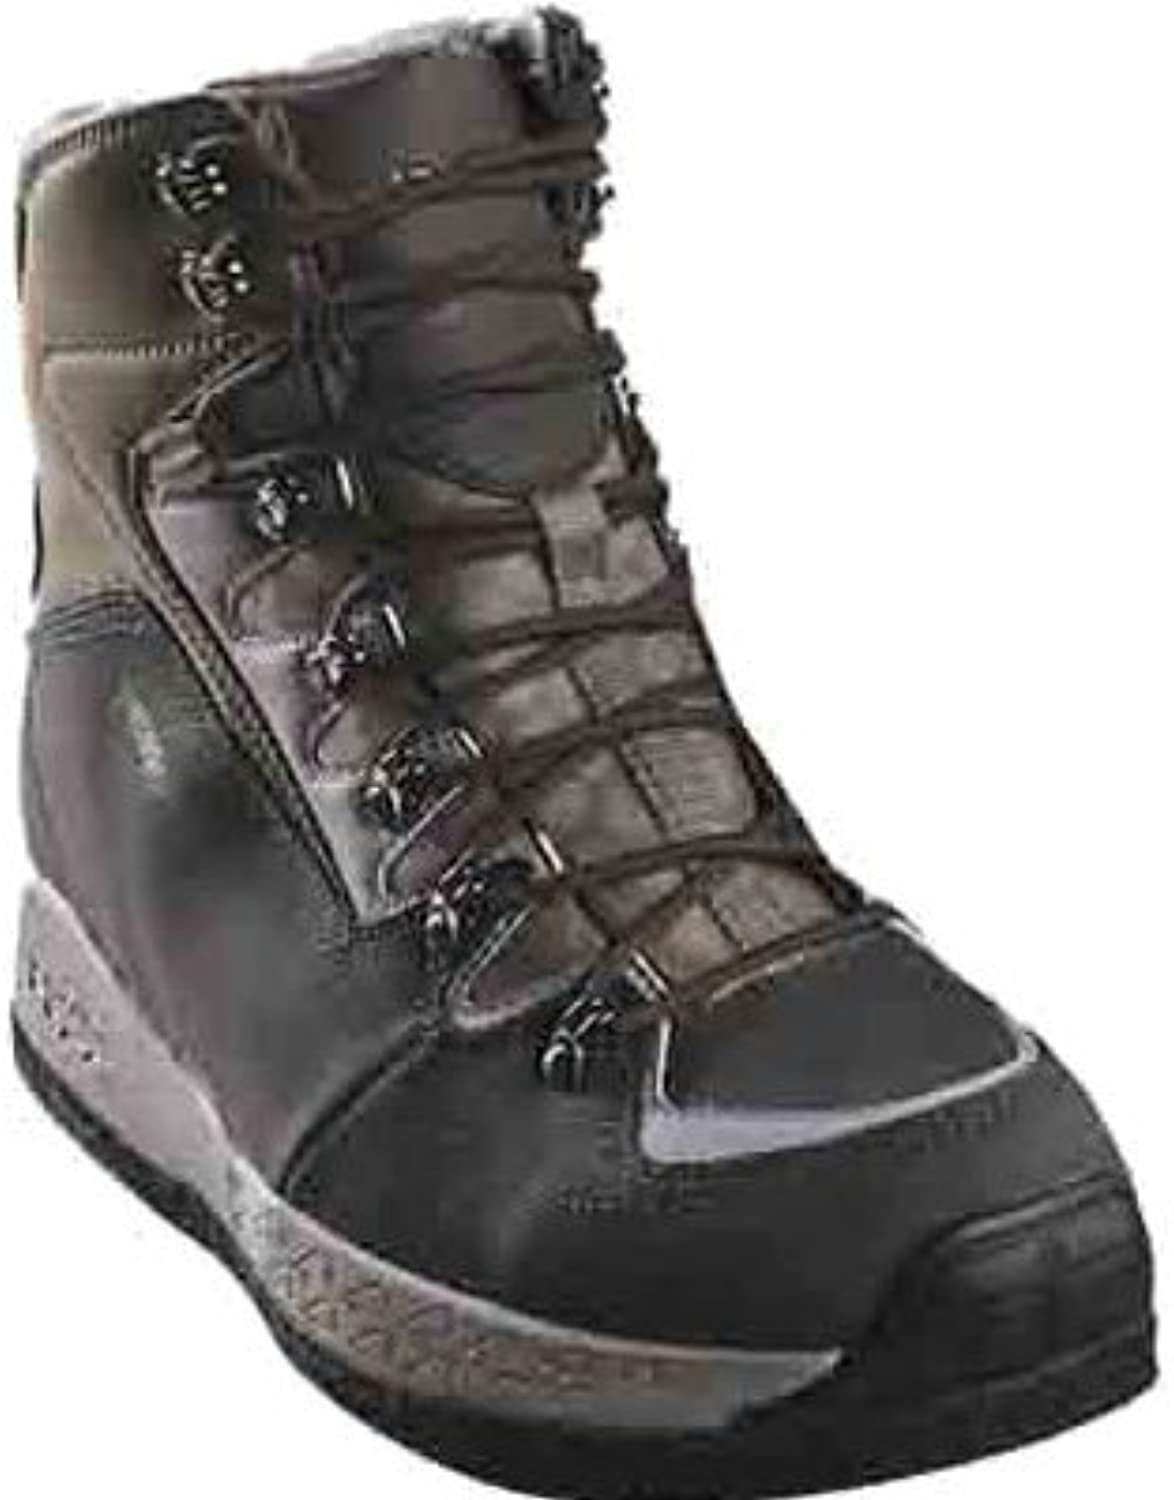 Patagonia Ultralight Wading Boots   Felt Forge Grey 8 US